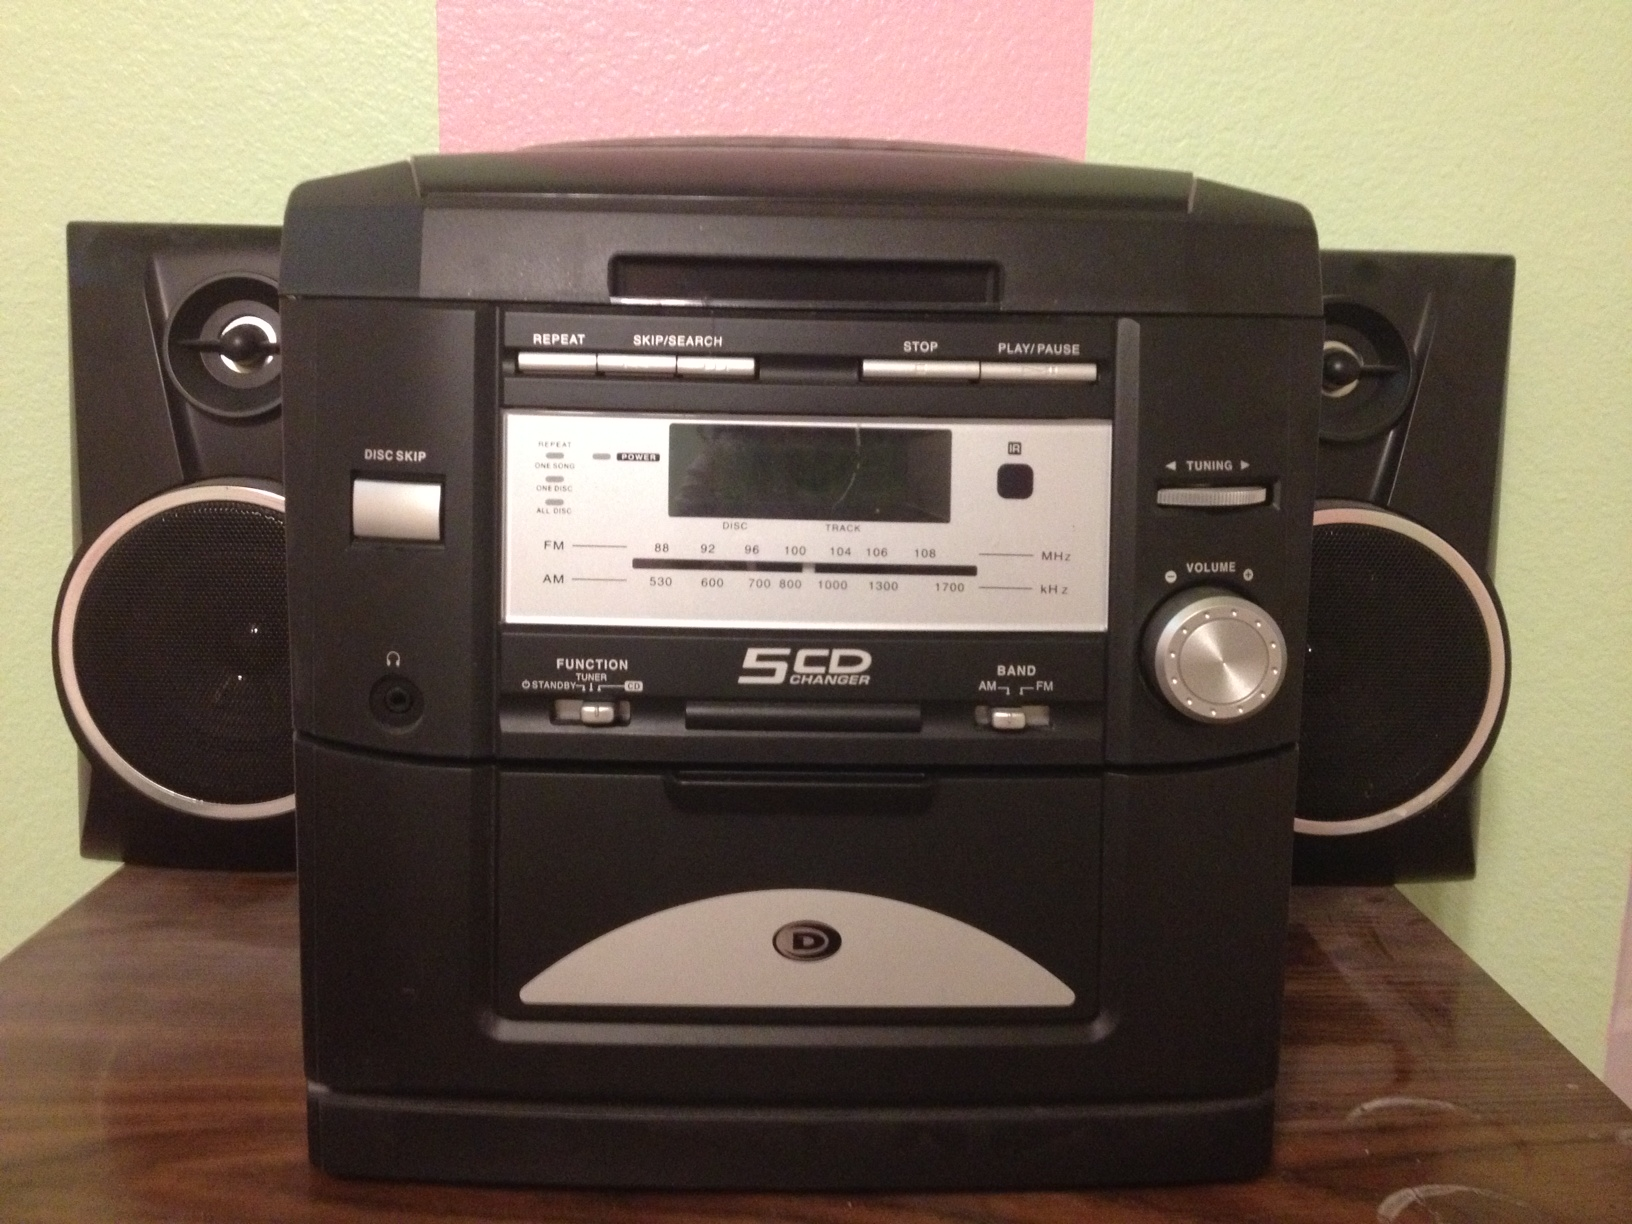 Radio and 5 Disc CD player